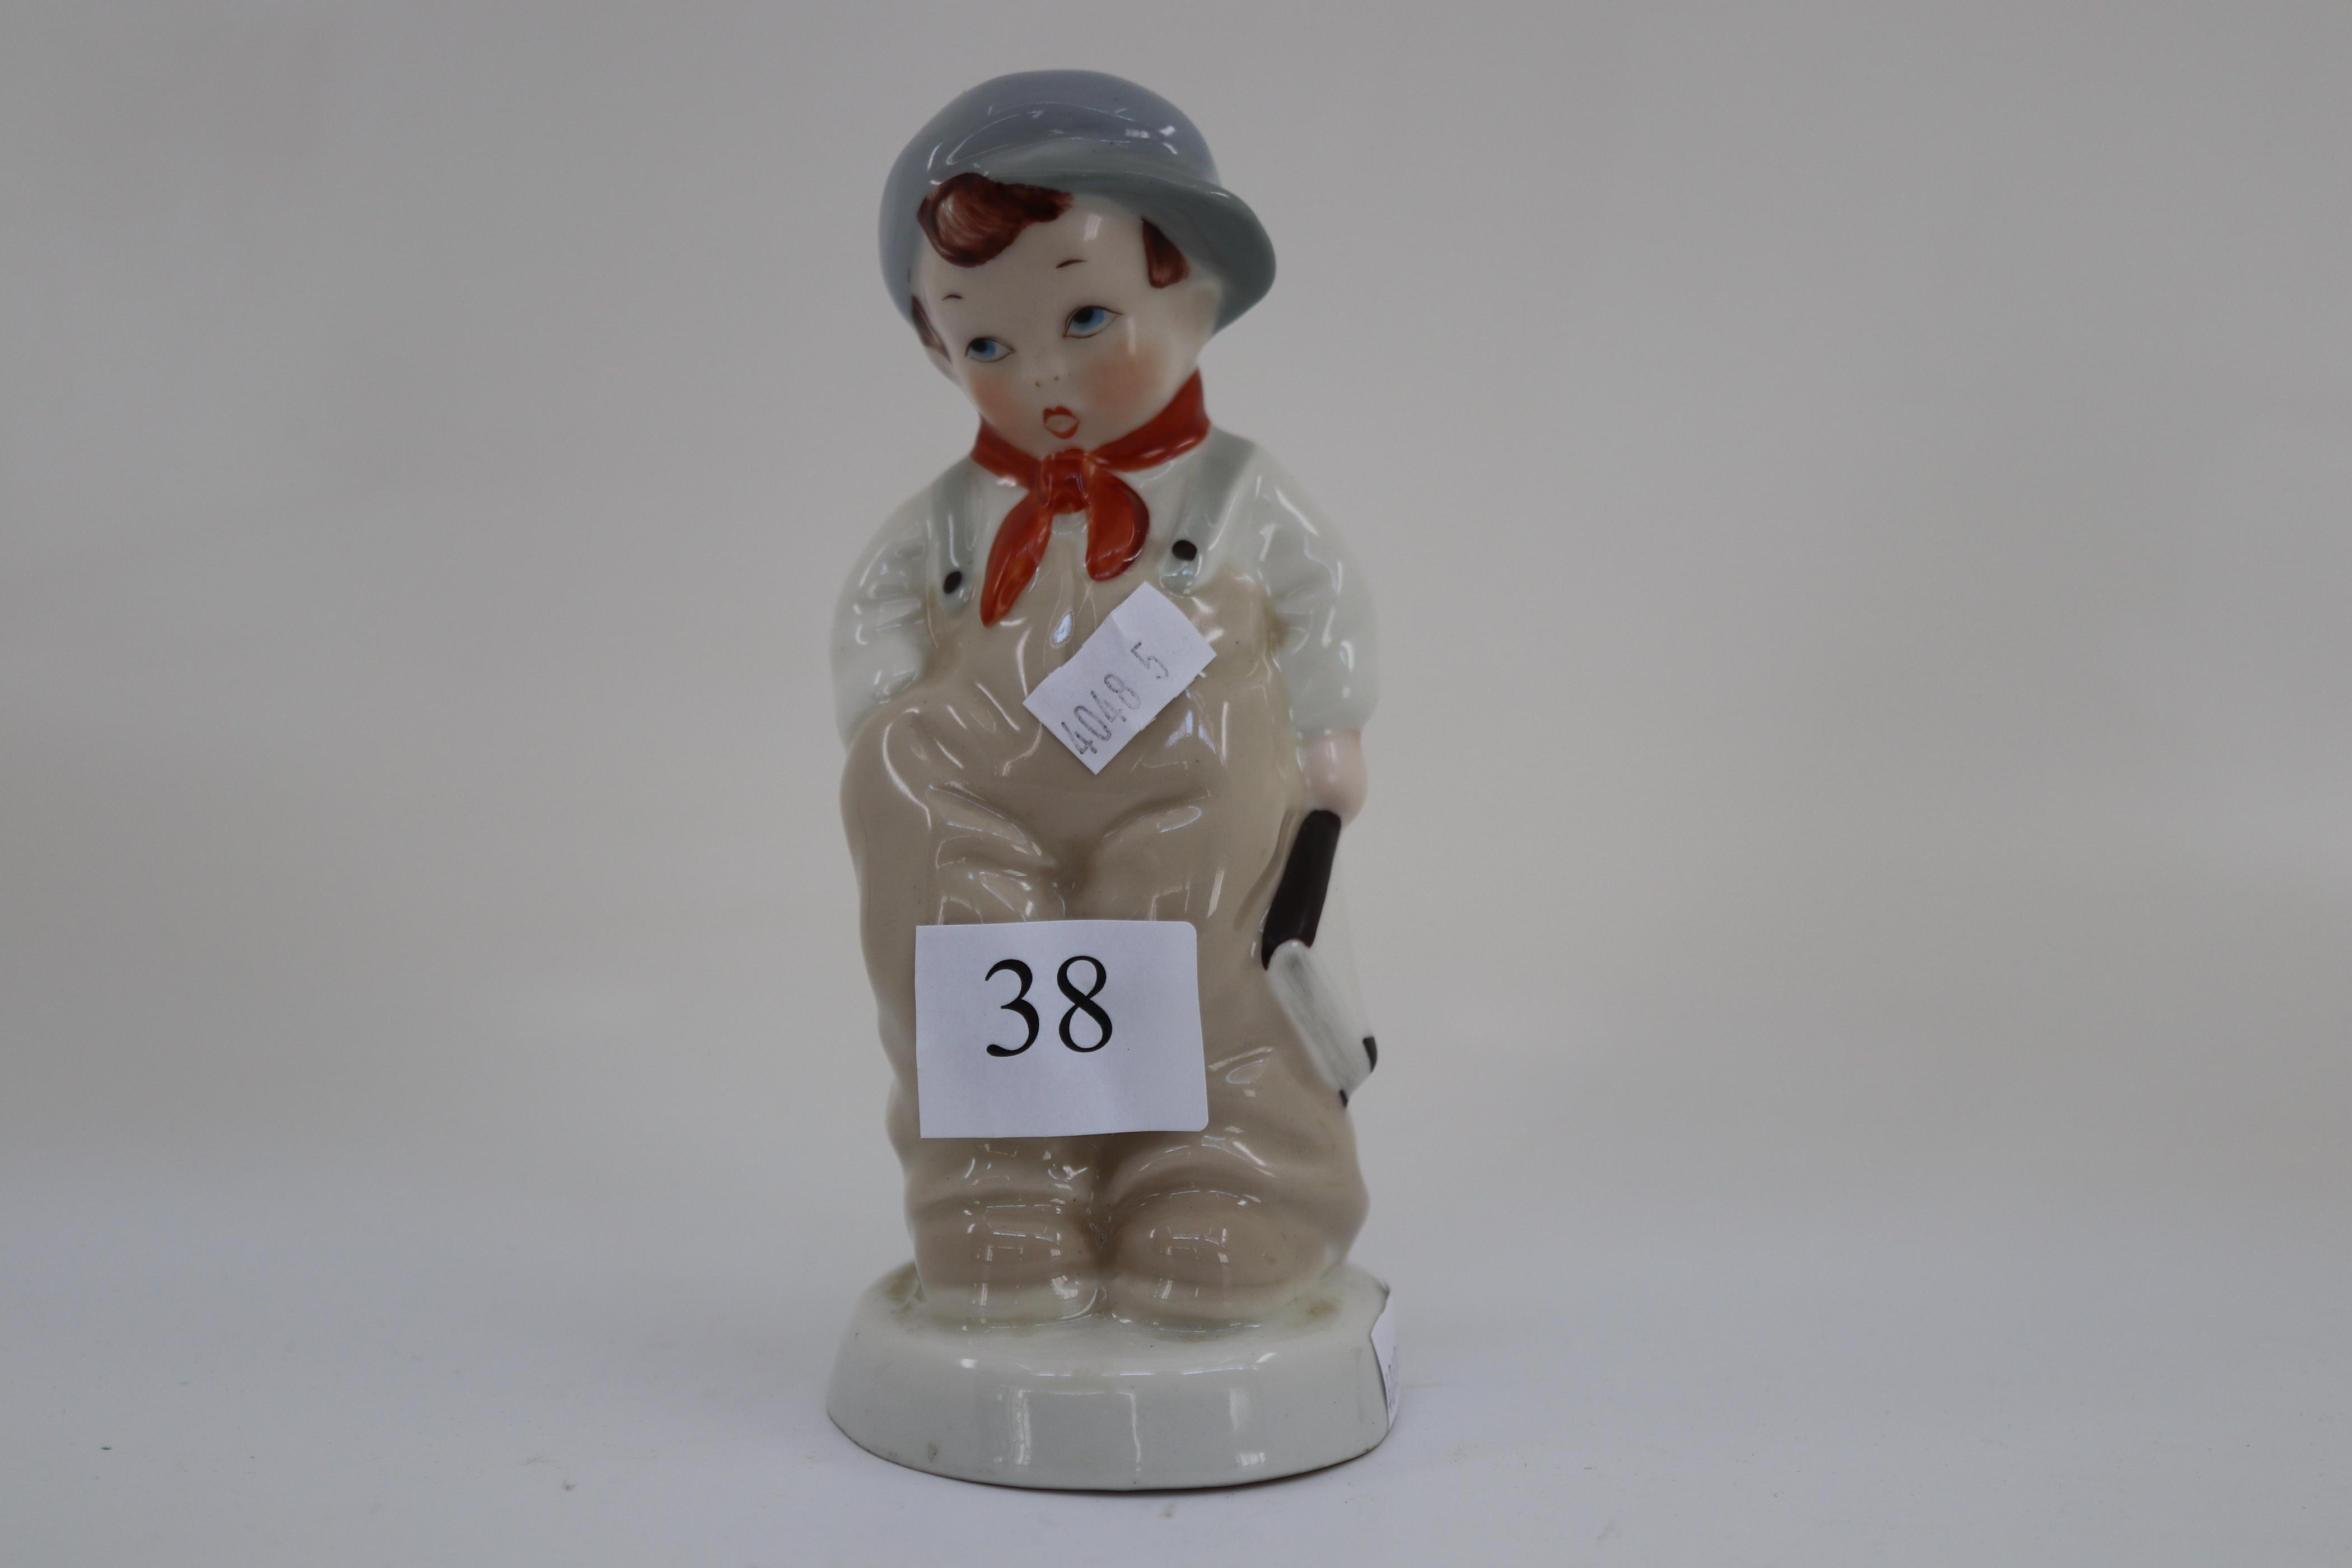 ROYAL DUX FIGURINE OF CONTRITE YOUNG BOY WITH HIS BOOK ( APPROX 16 CM TALL X 7CM WIDE)